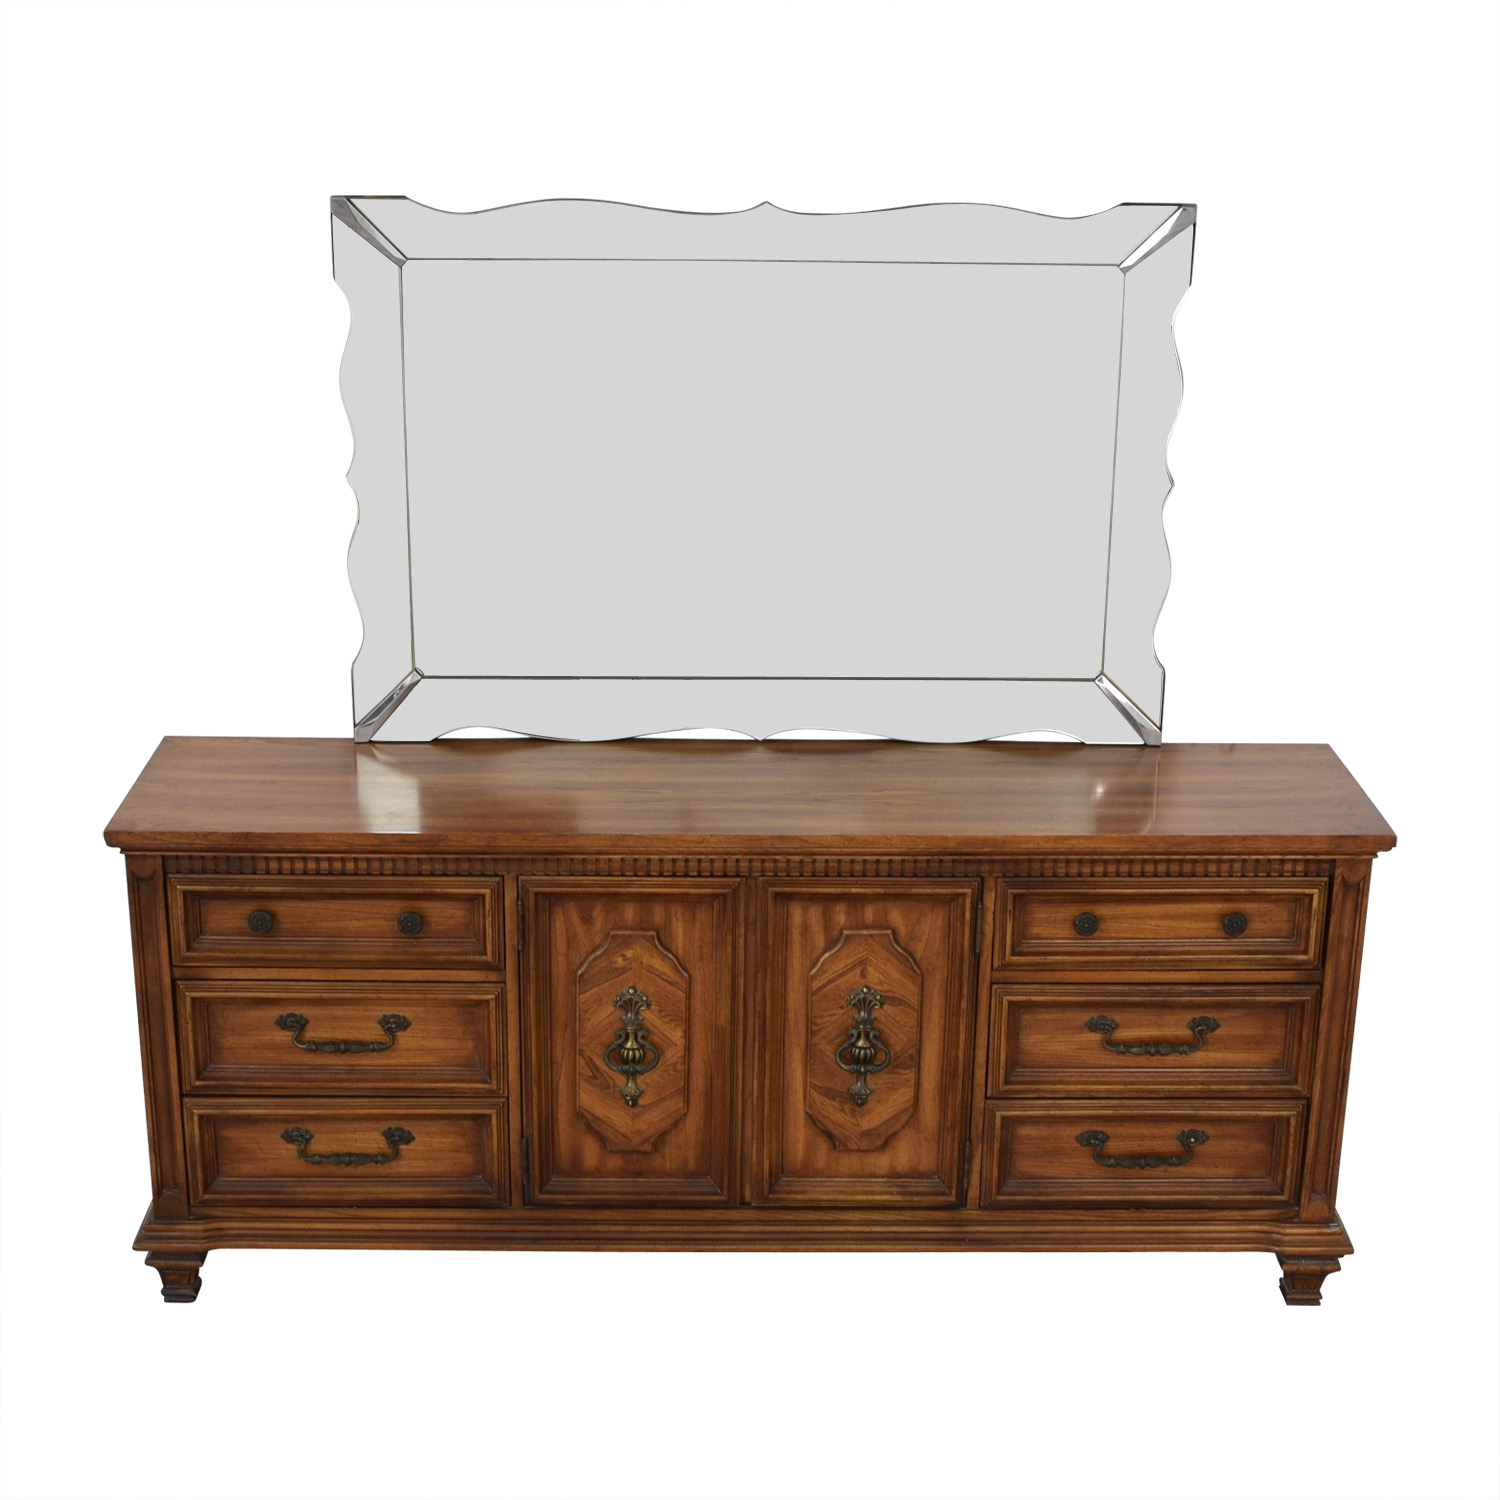 shop Albe Furniture Albe Furniture Nine-Drawer Dresser with Scalloped Mirror online